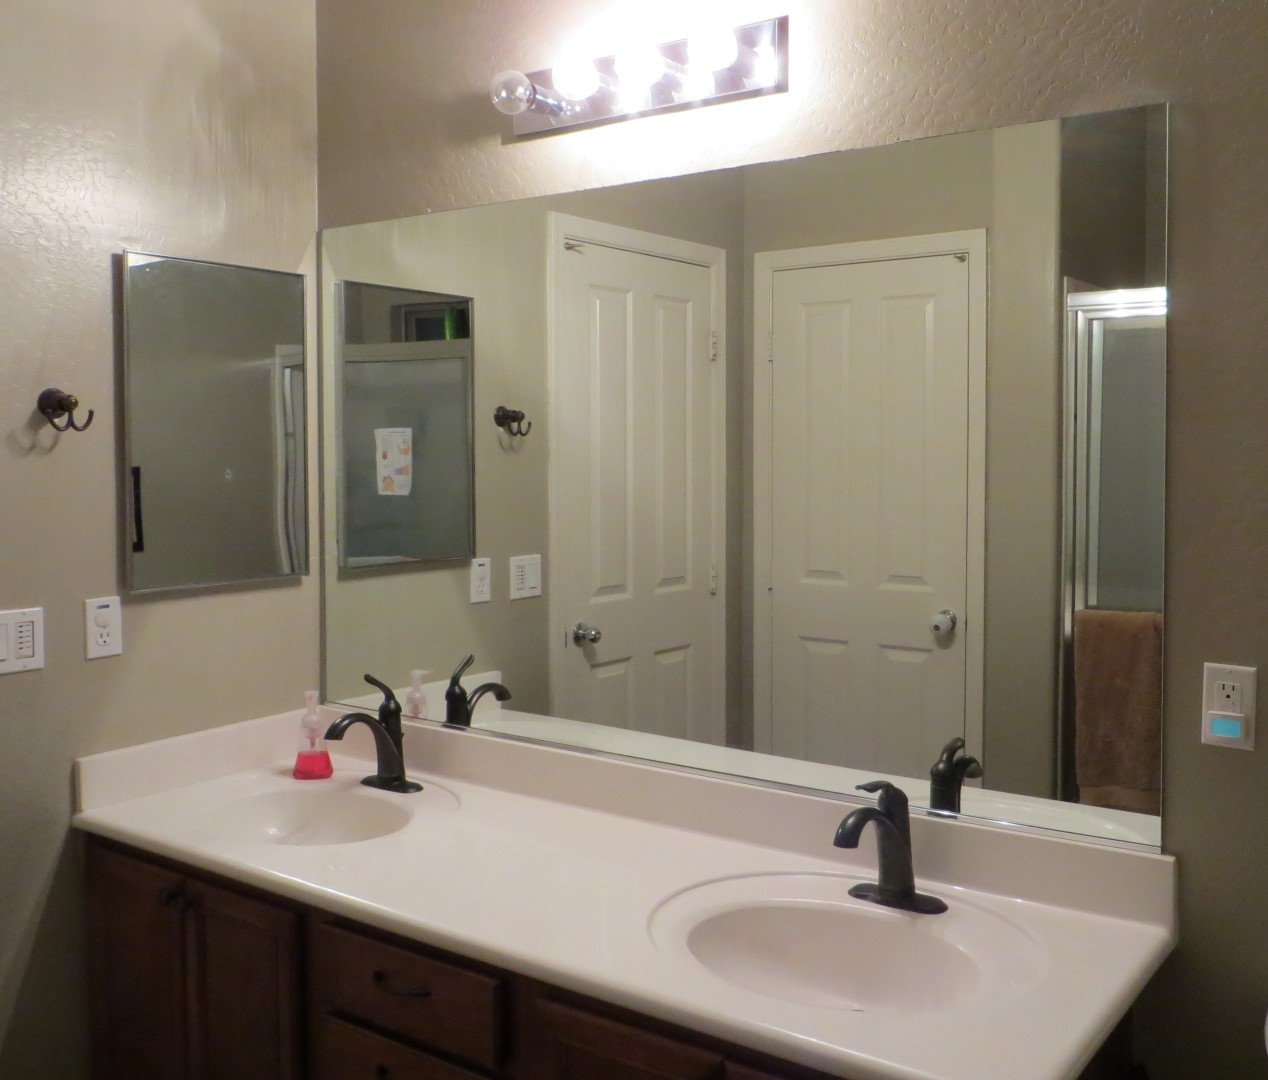 complete old fashioned bathroom with wooden vanity and white sinks under clear framed bathroom mirrors